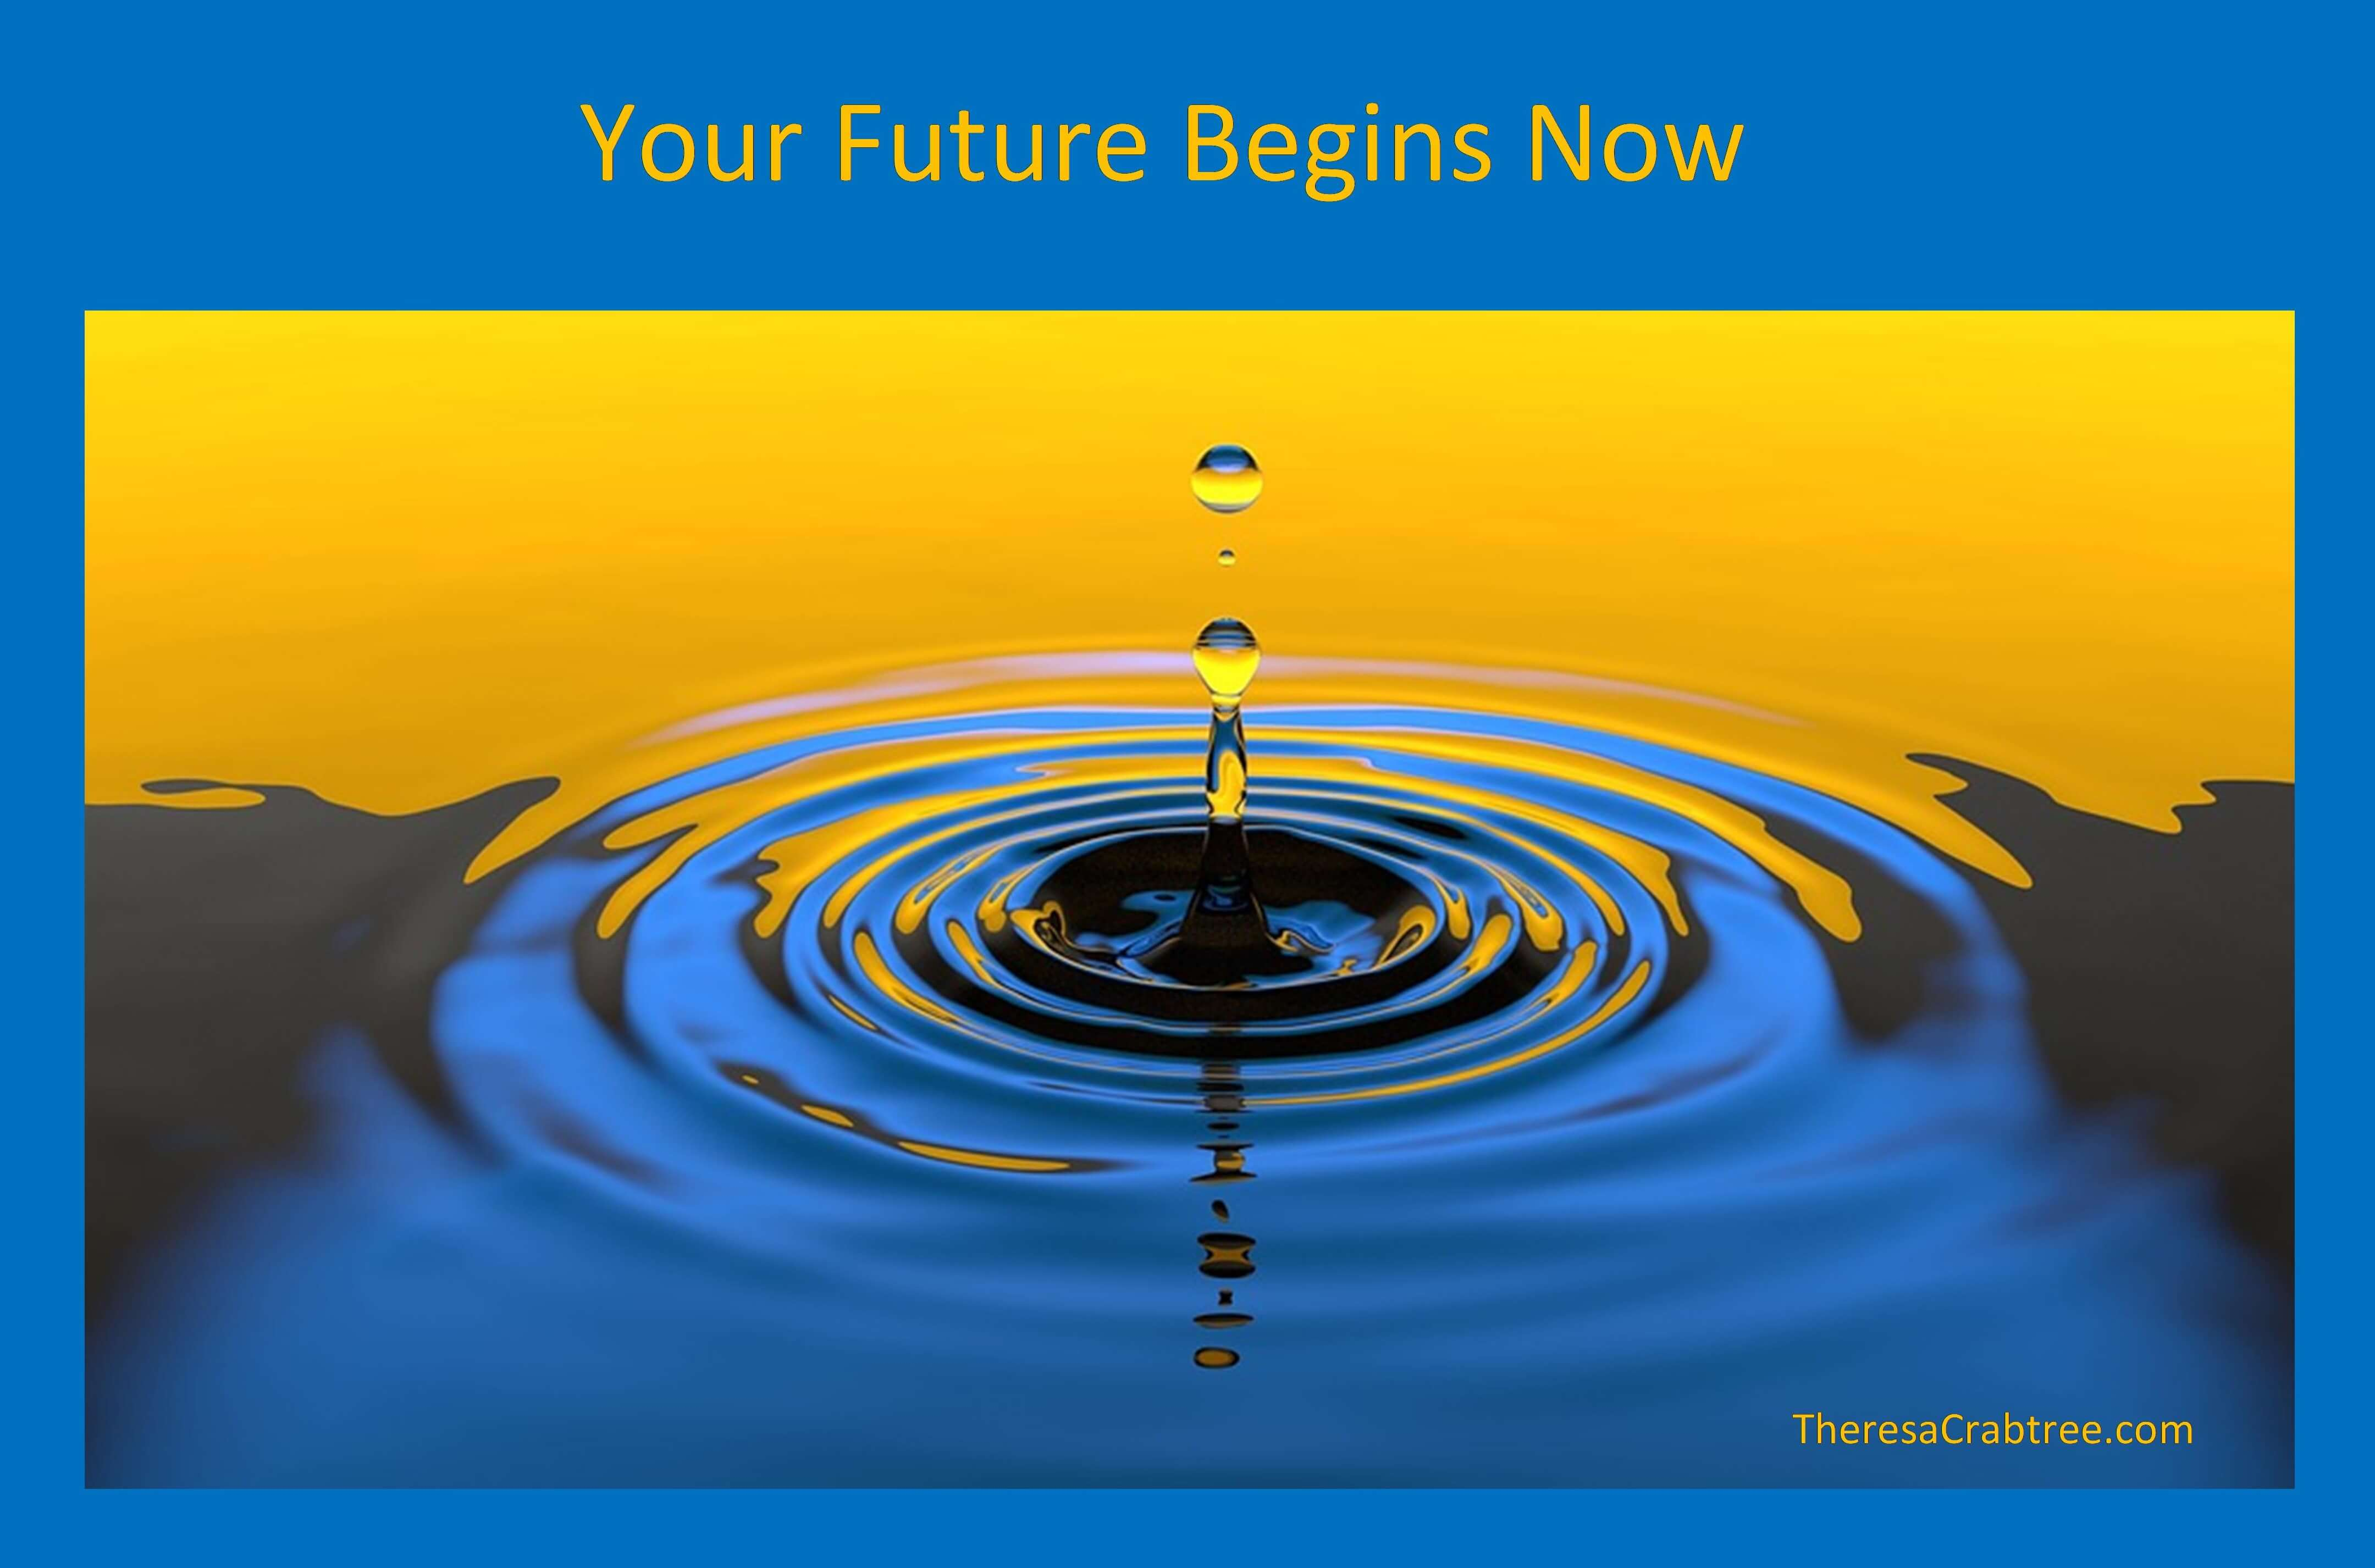 Your Future Begins Now